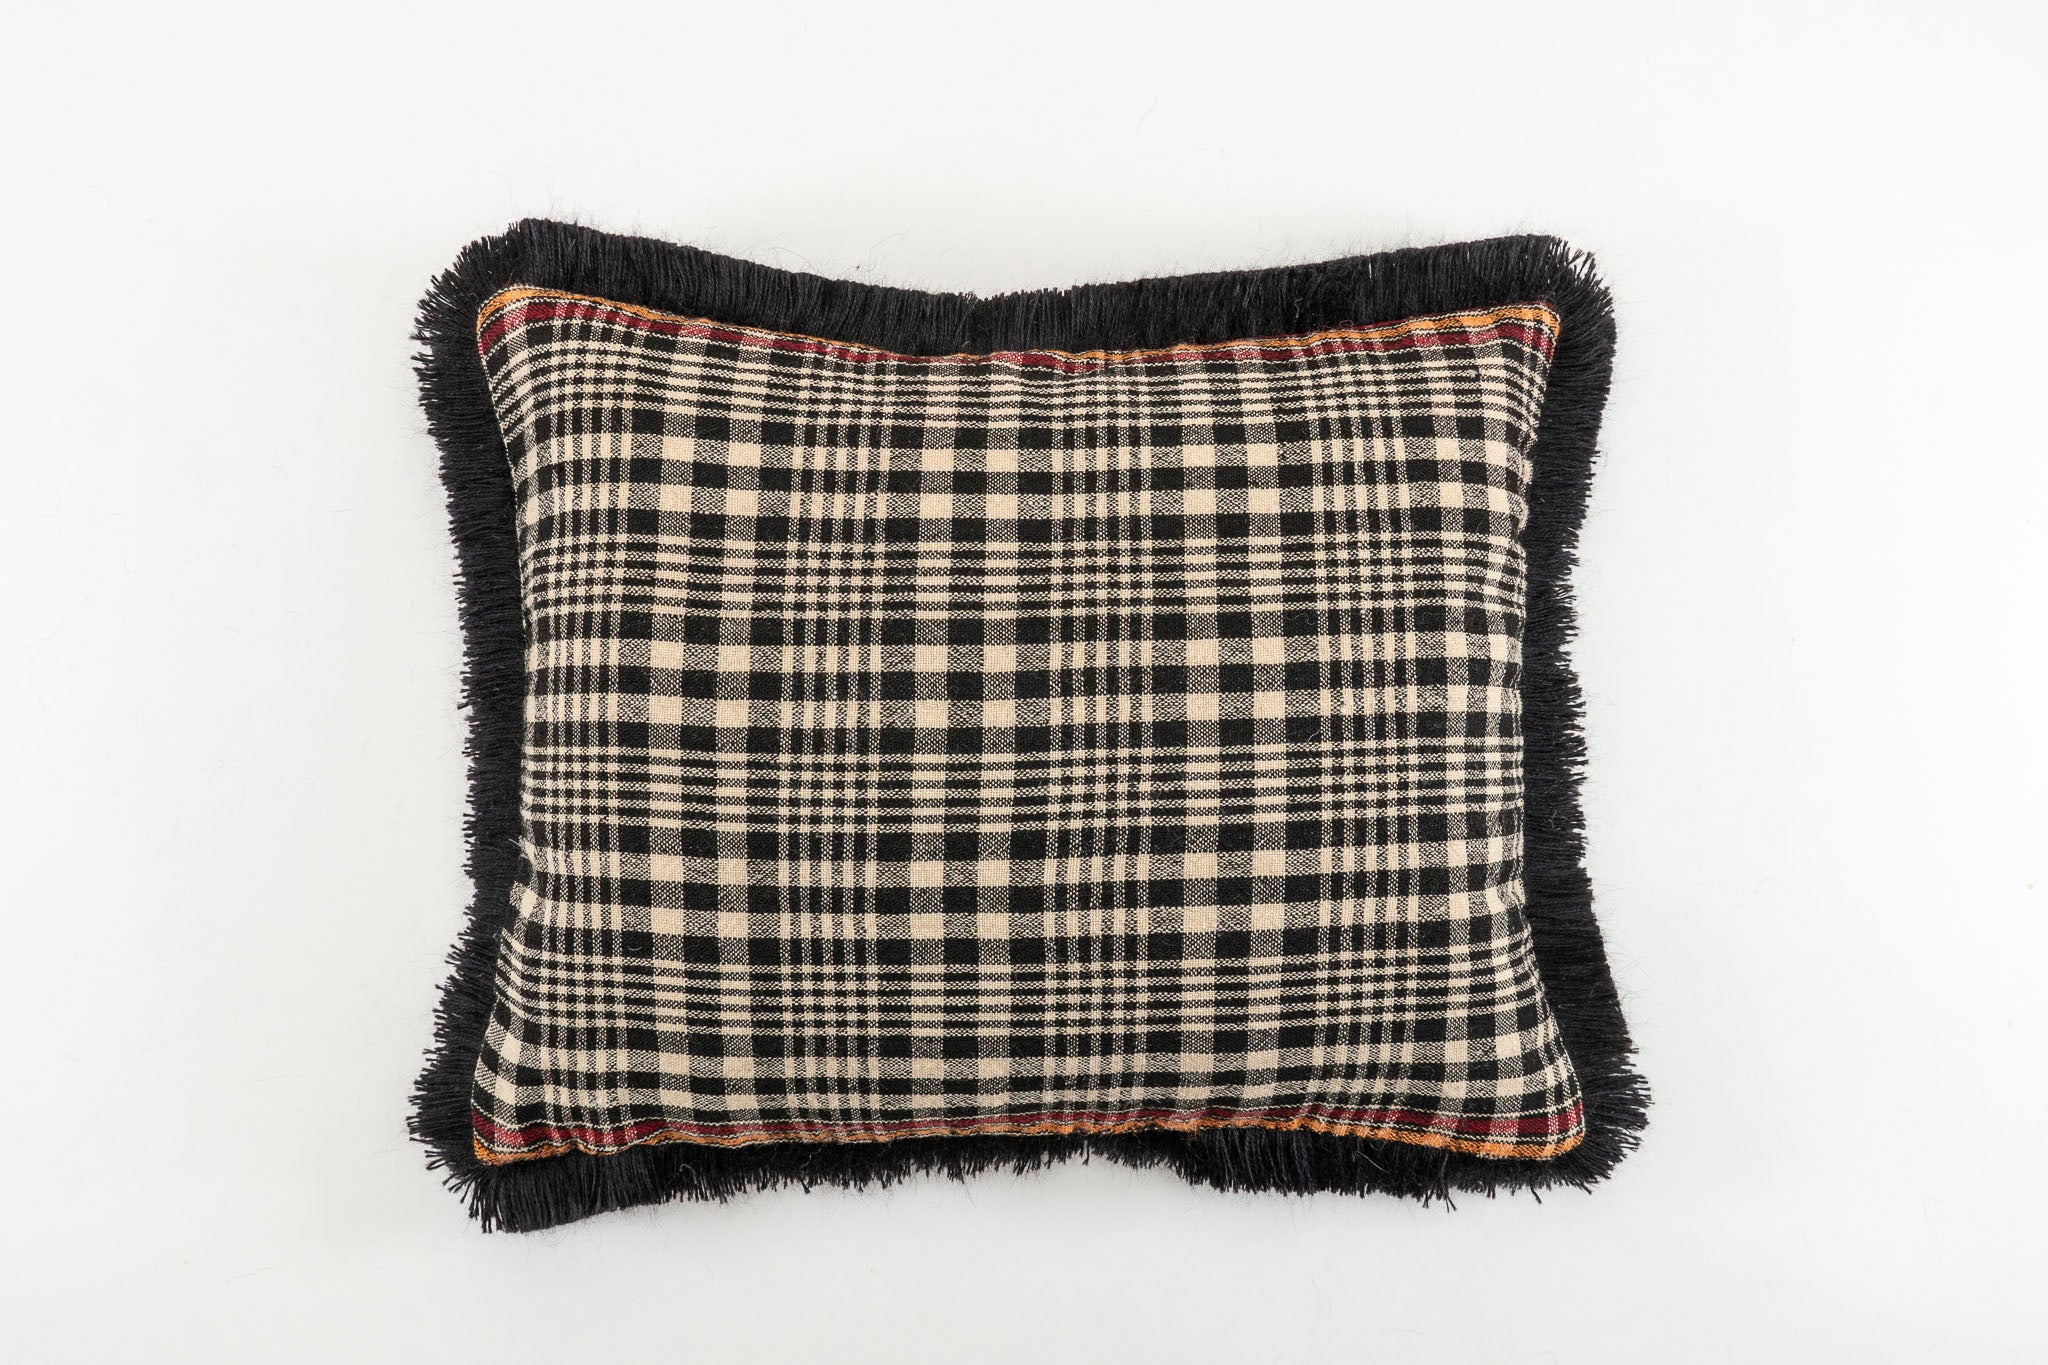 Pillow: Hand woven antique Bulgarian wool